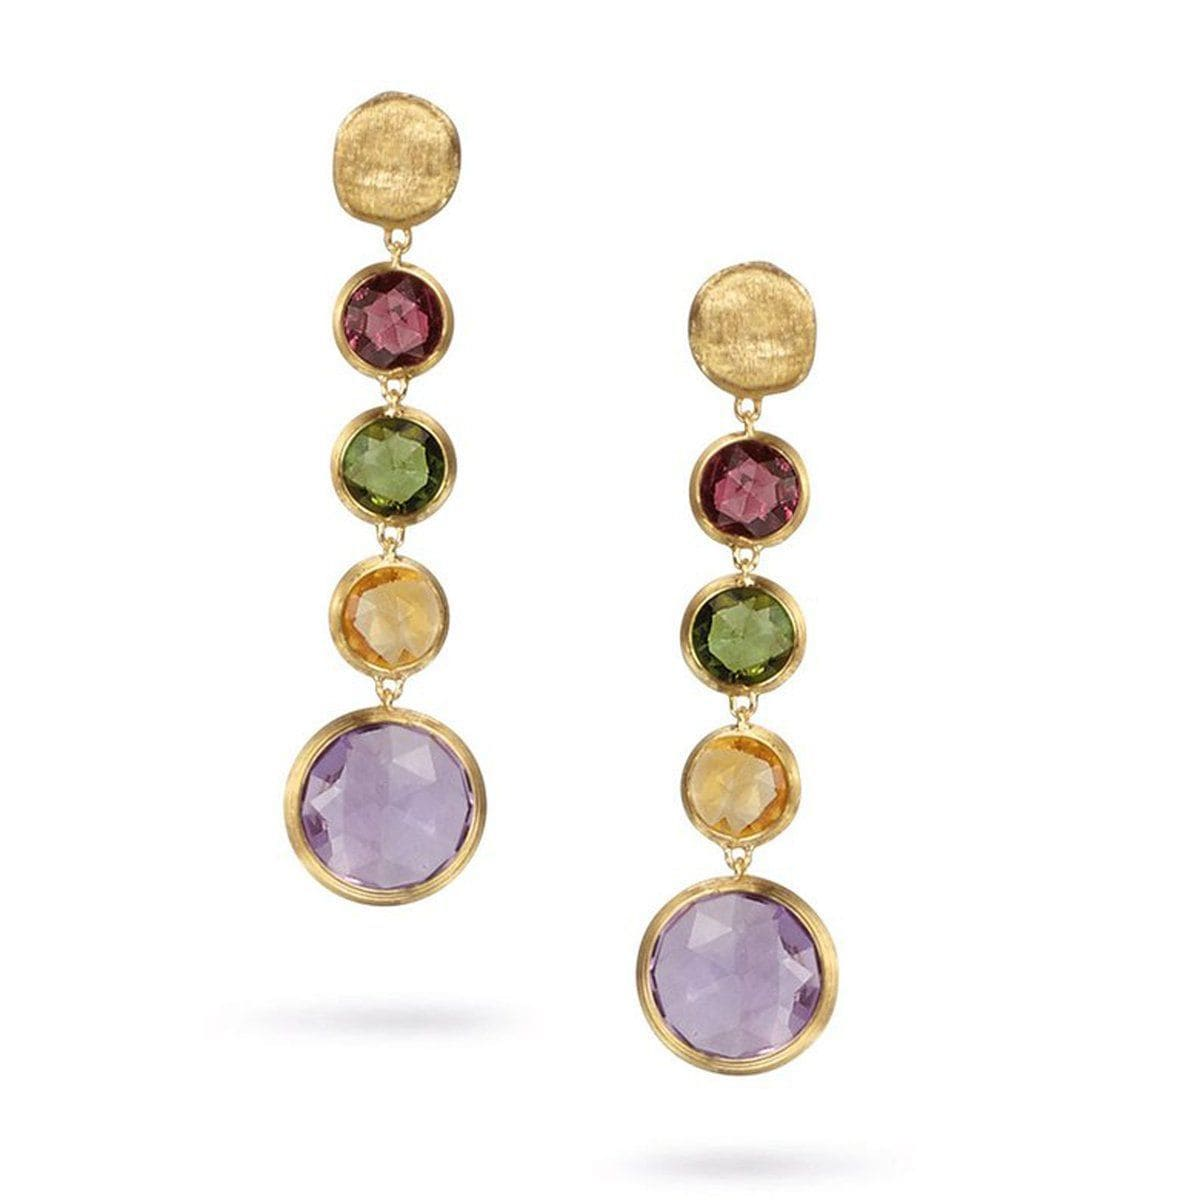 Jaipur Circle Mixed Gemstone Drop Earrings - OB901 MIX01 Y-Marco Bicego-Renee Taylor Gallery